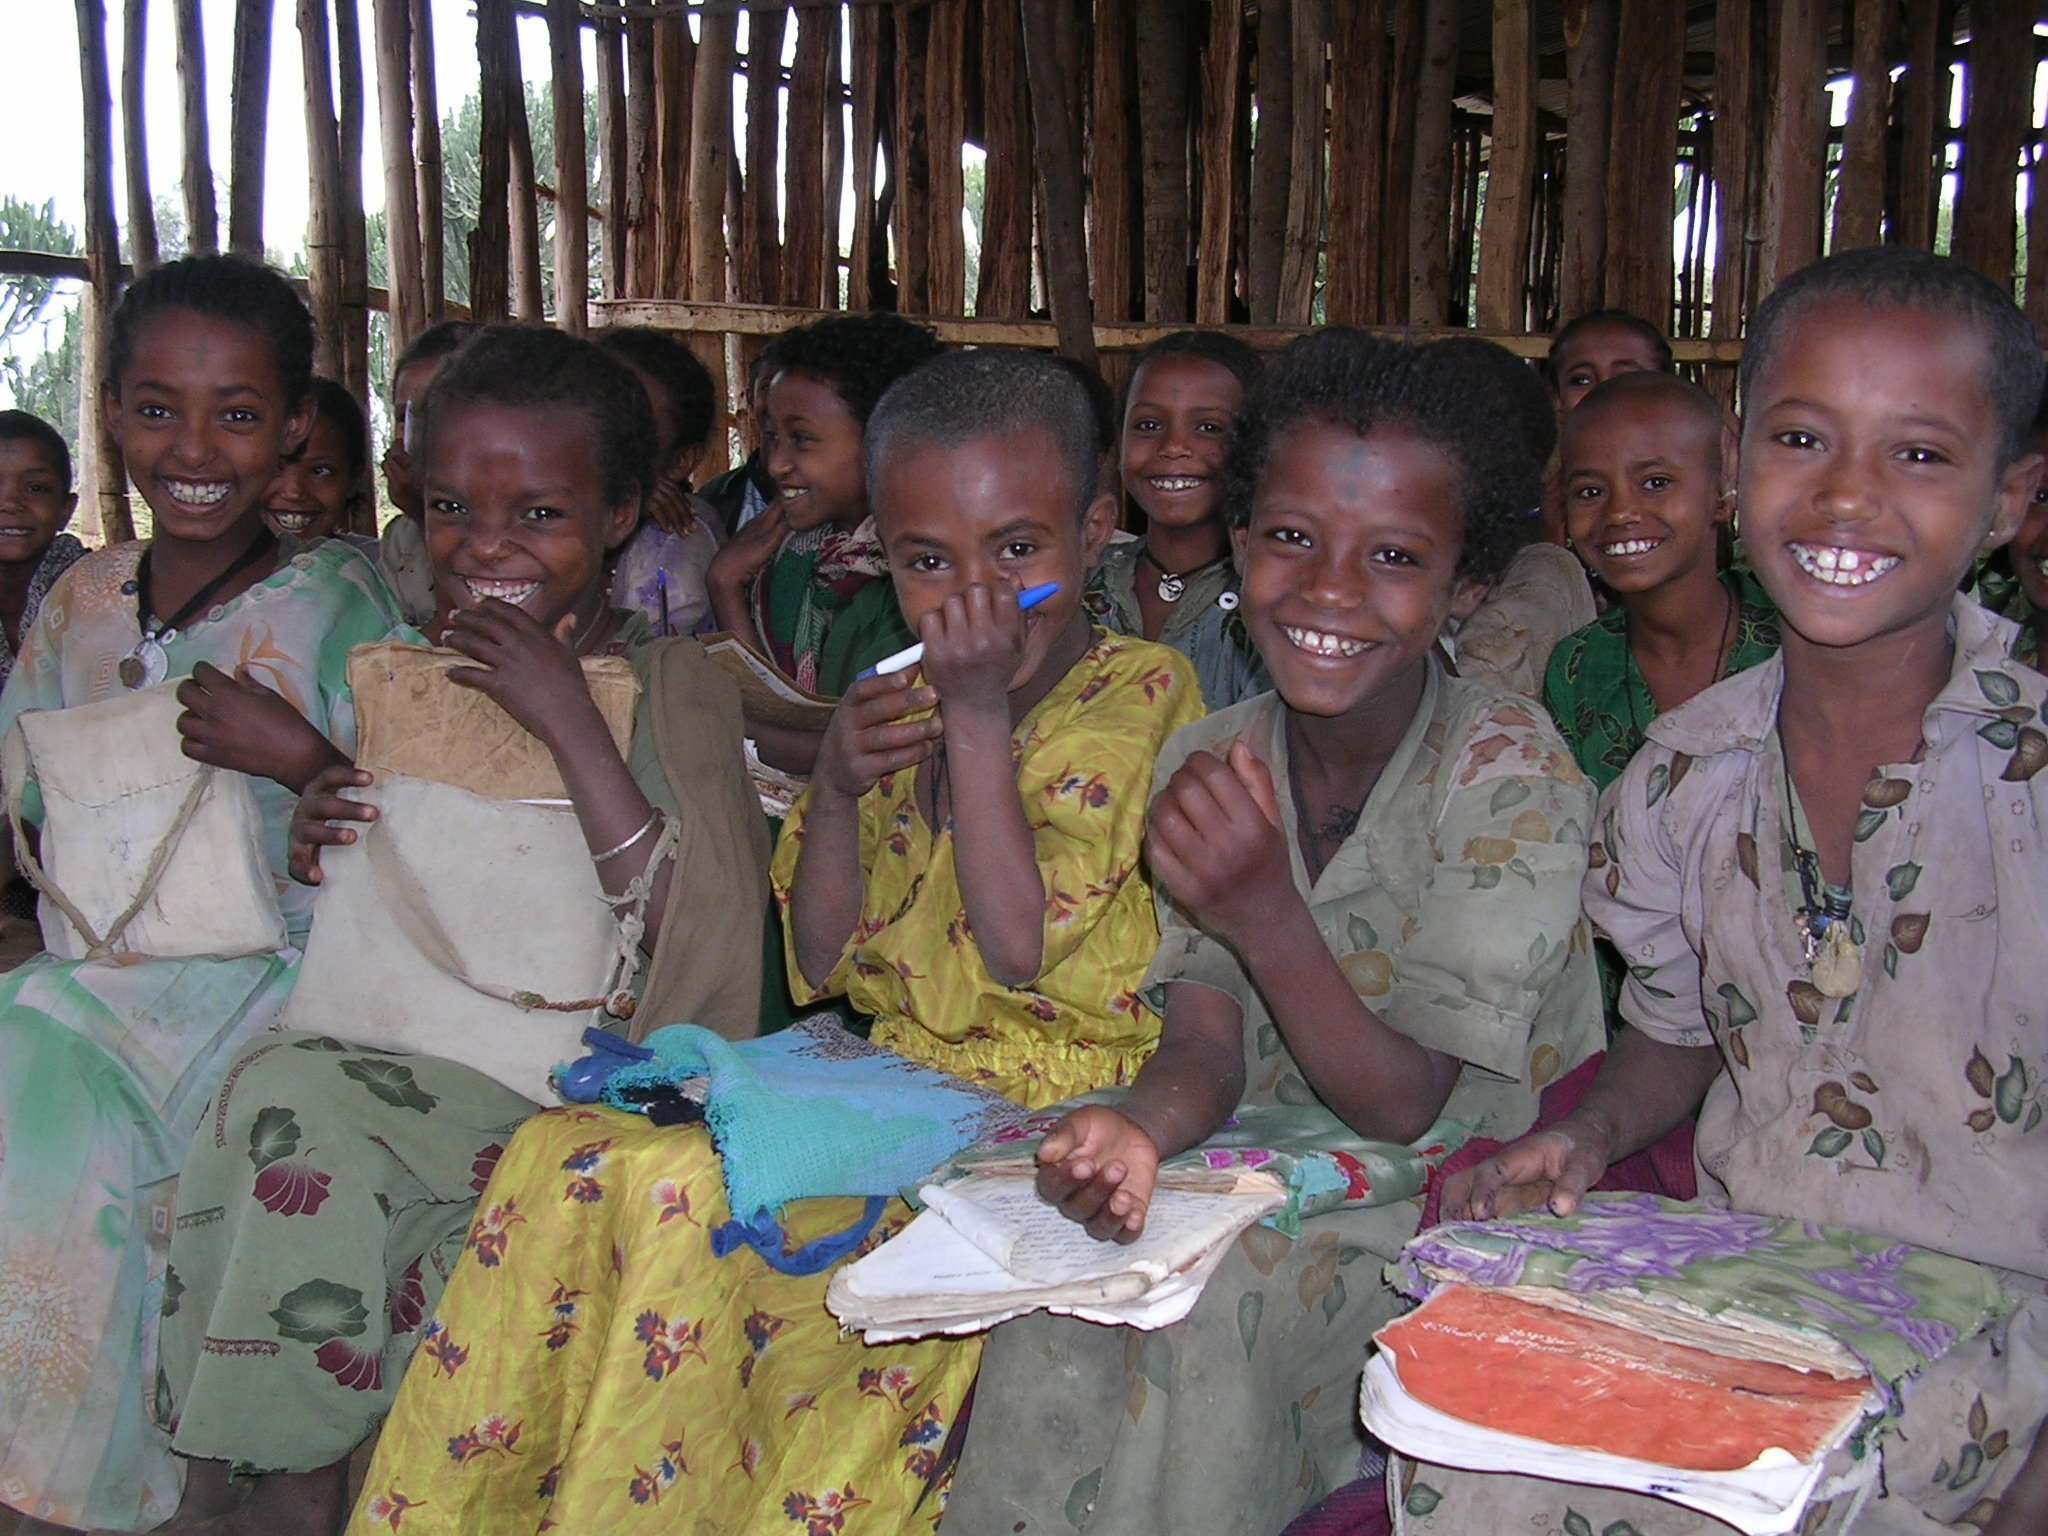 Ethiopian children more satisfied with school life than in the UK